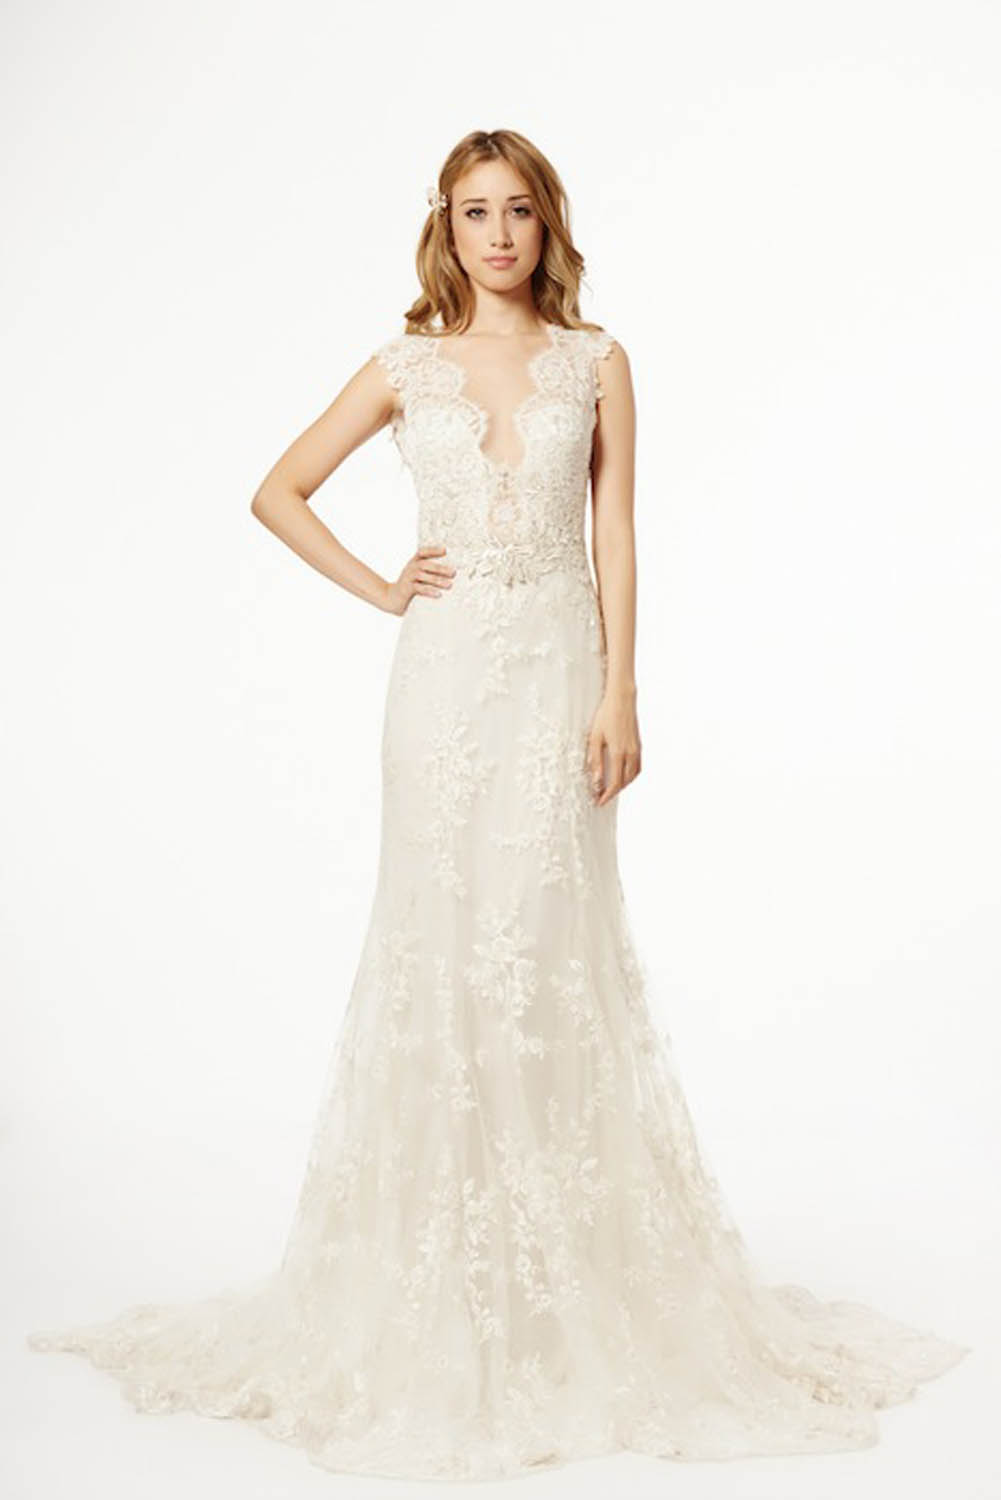 dresses for outdoor wedding guest outdoor wedding dresses Dresses For Fall Wedding Guest Attire What To